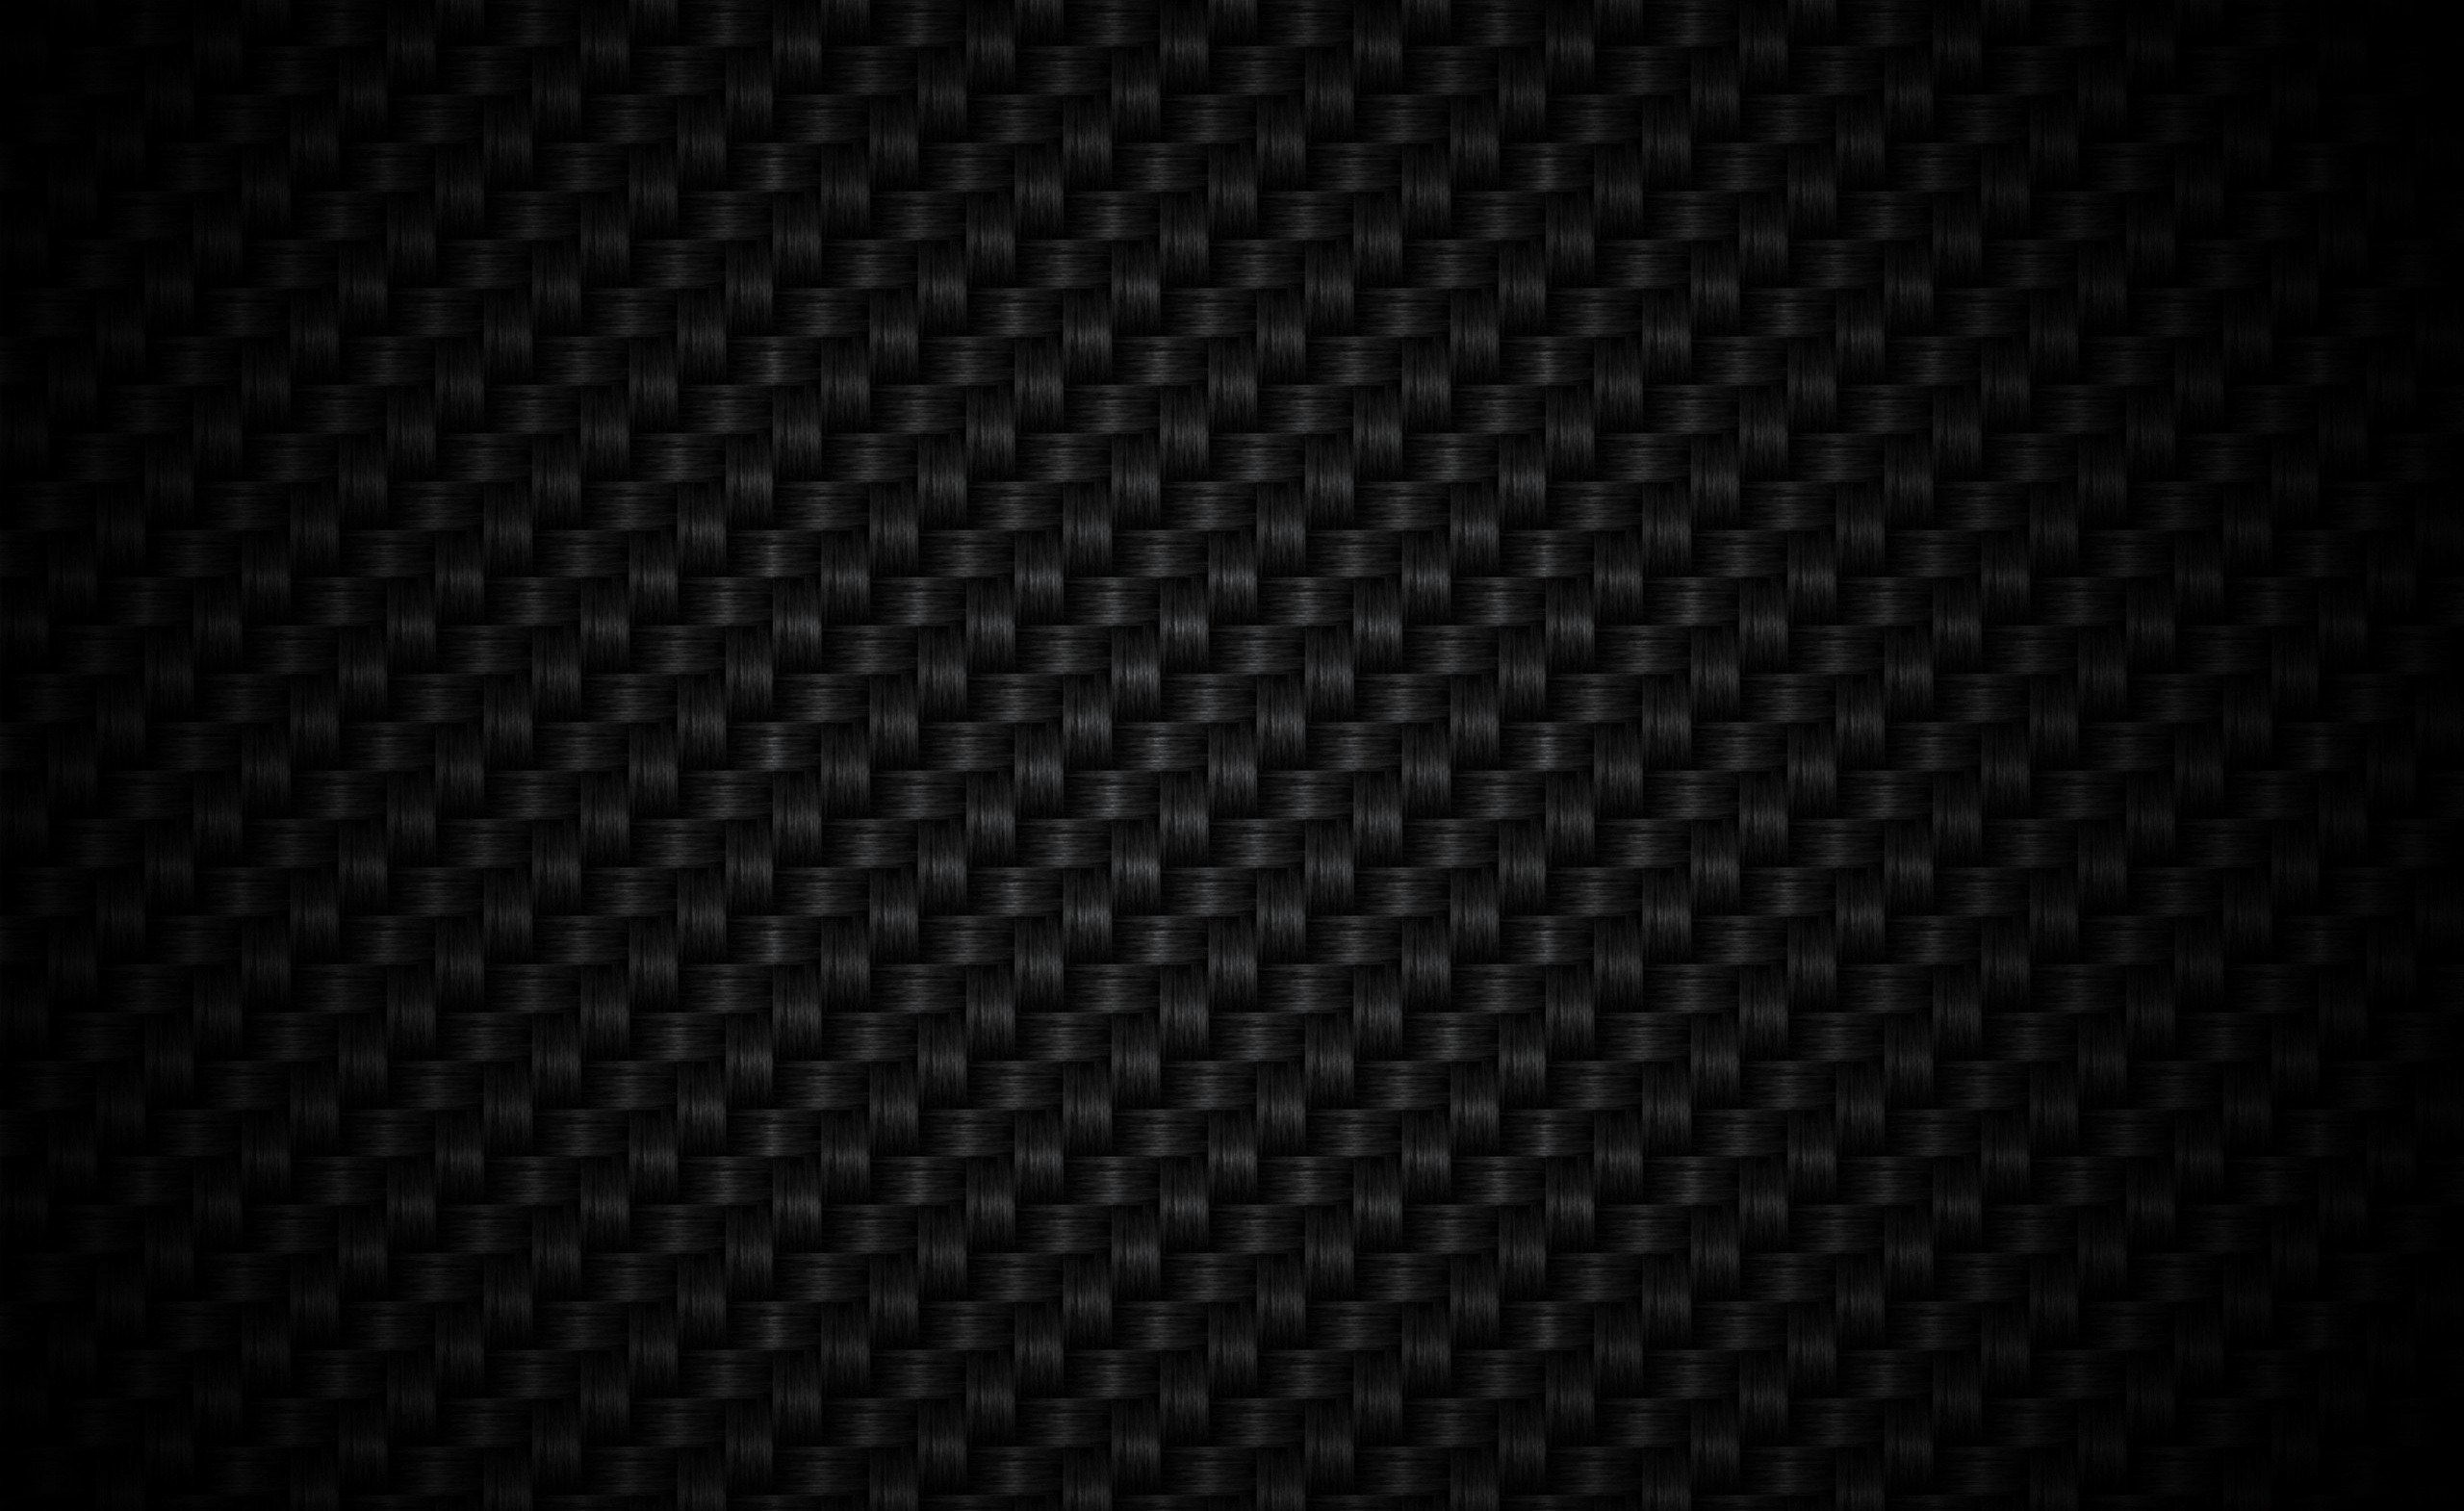 Texture HD Wallpapers (75+ Images